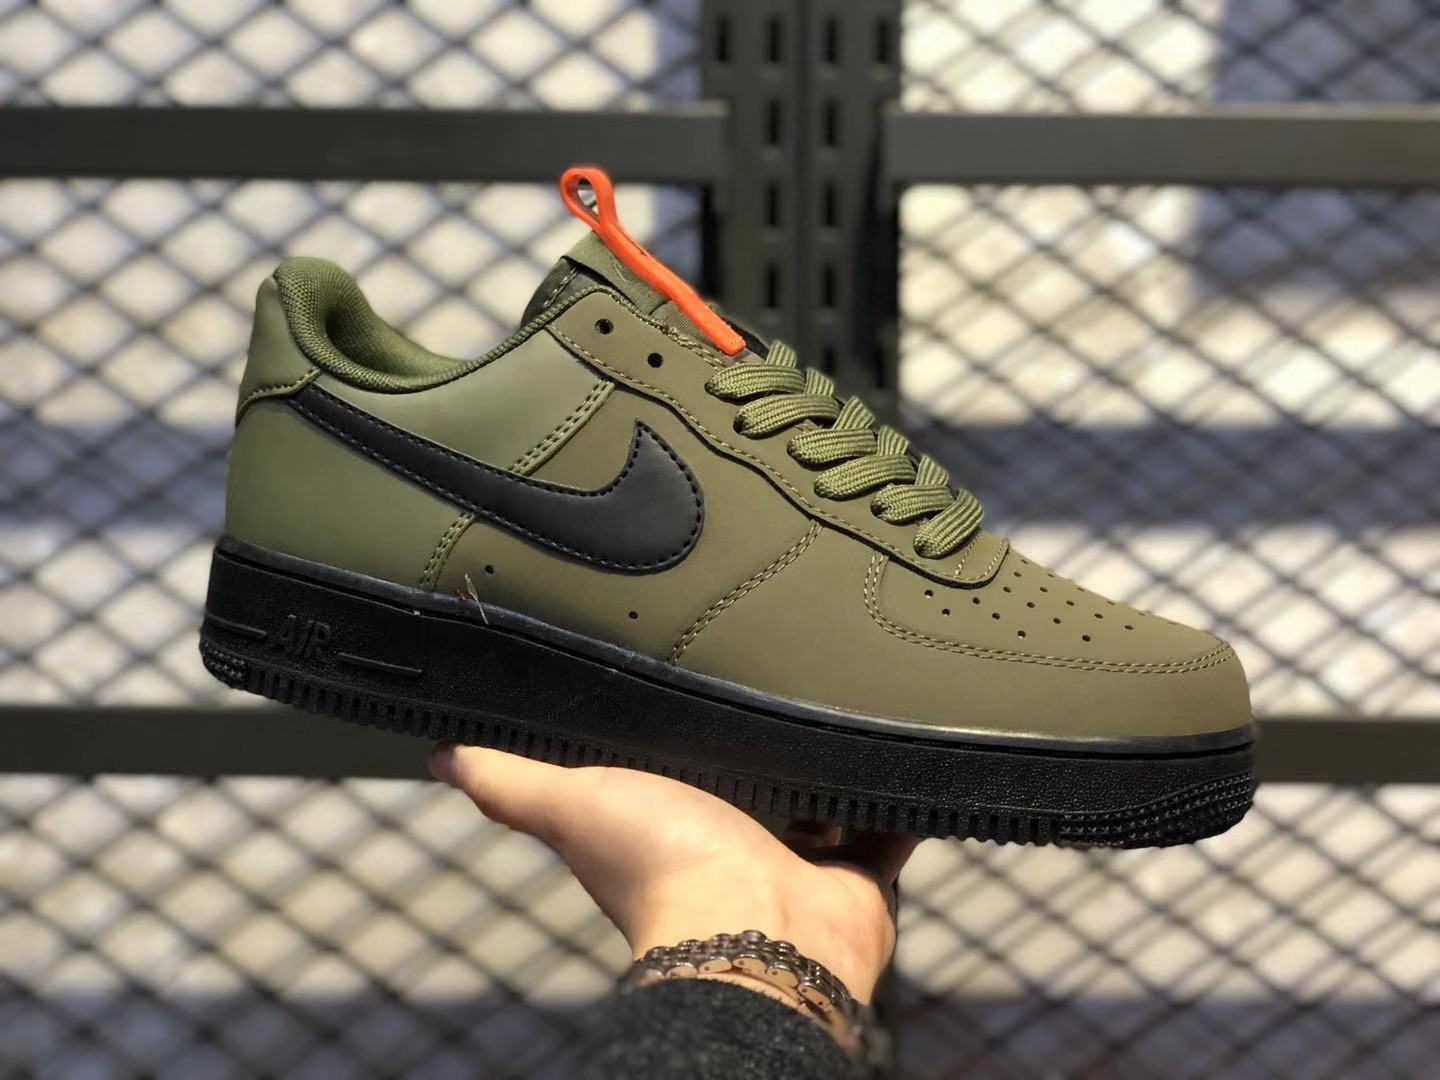 Nike Air Force 1 Medium Olive/Starfish/Black Men's Sneakers BQ4326-200